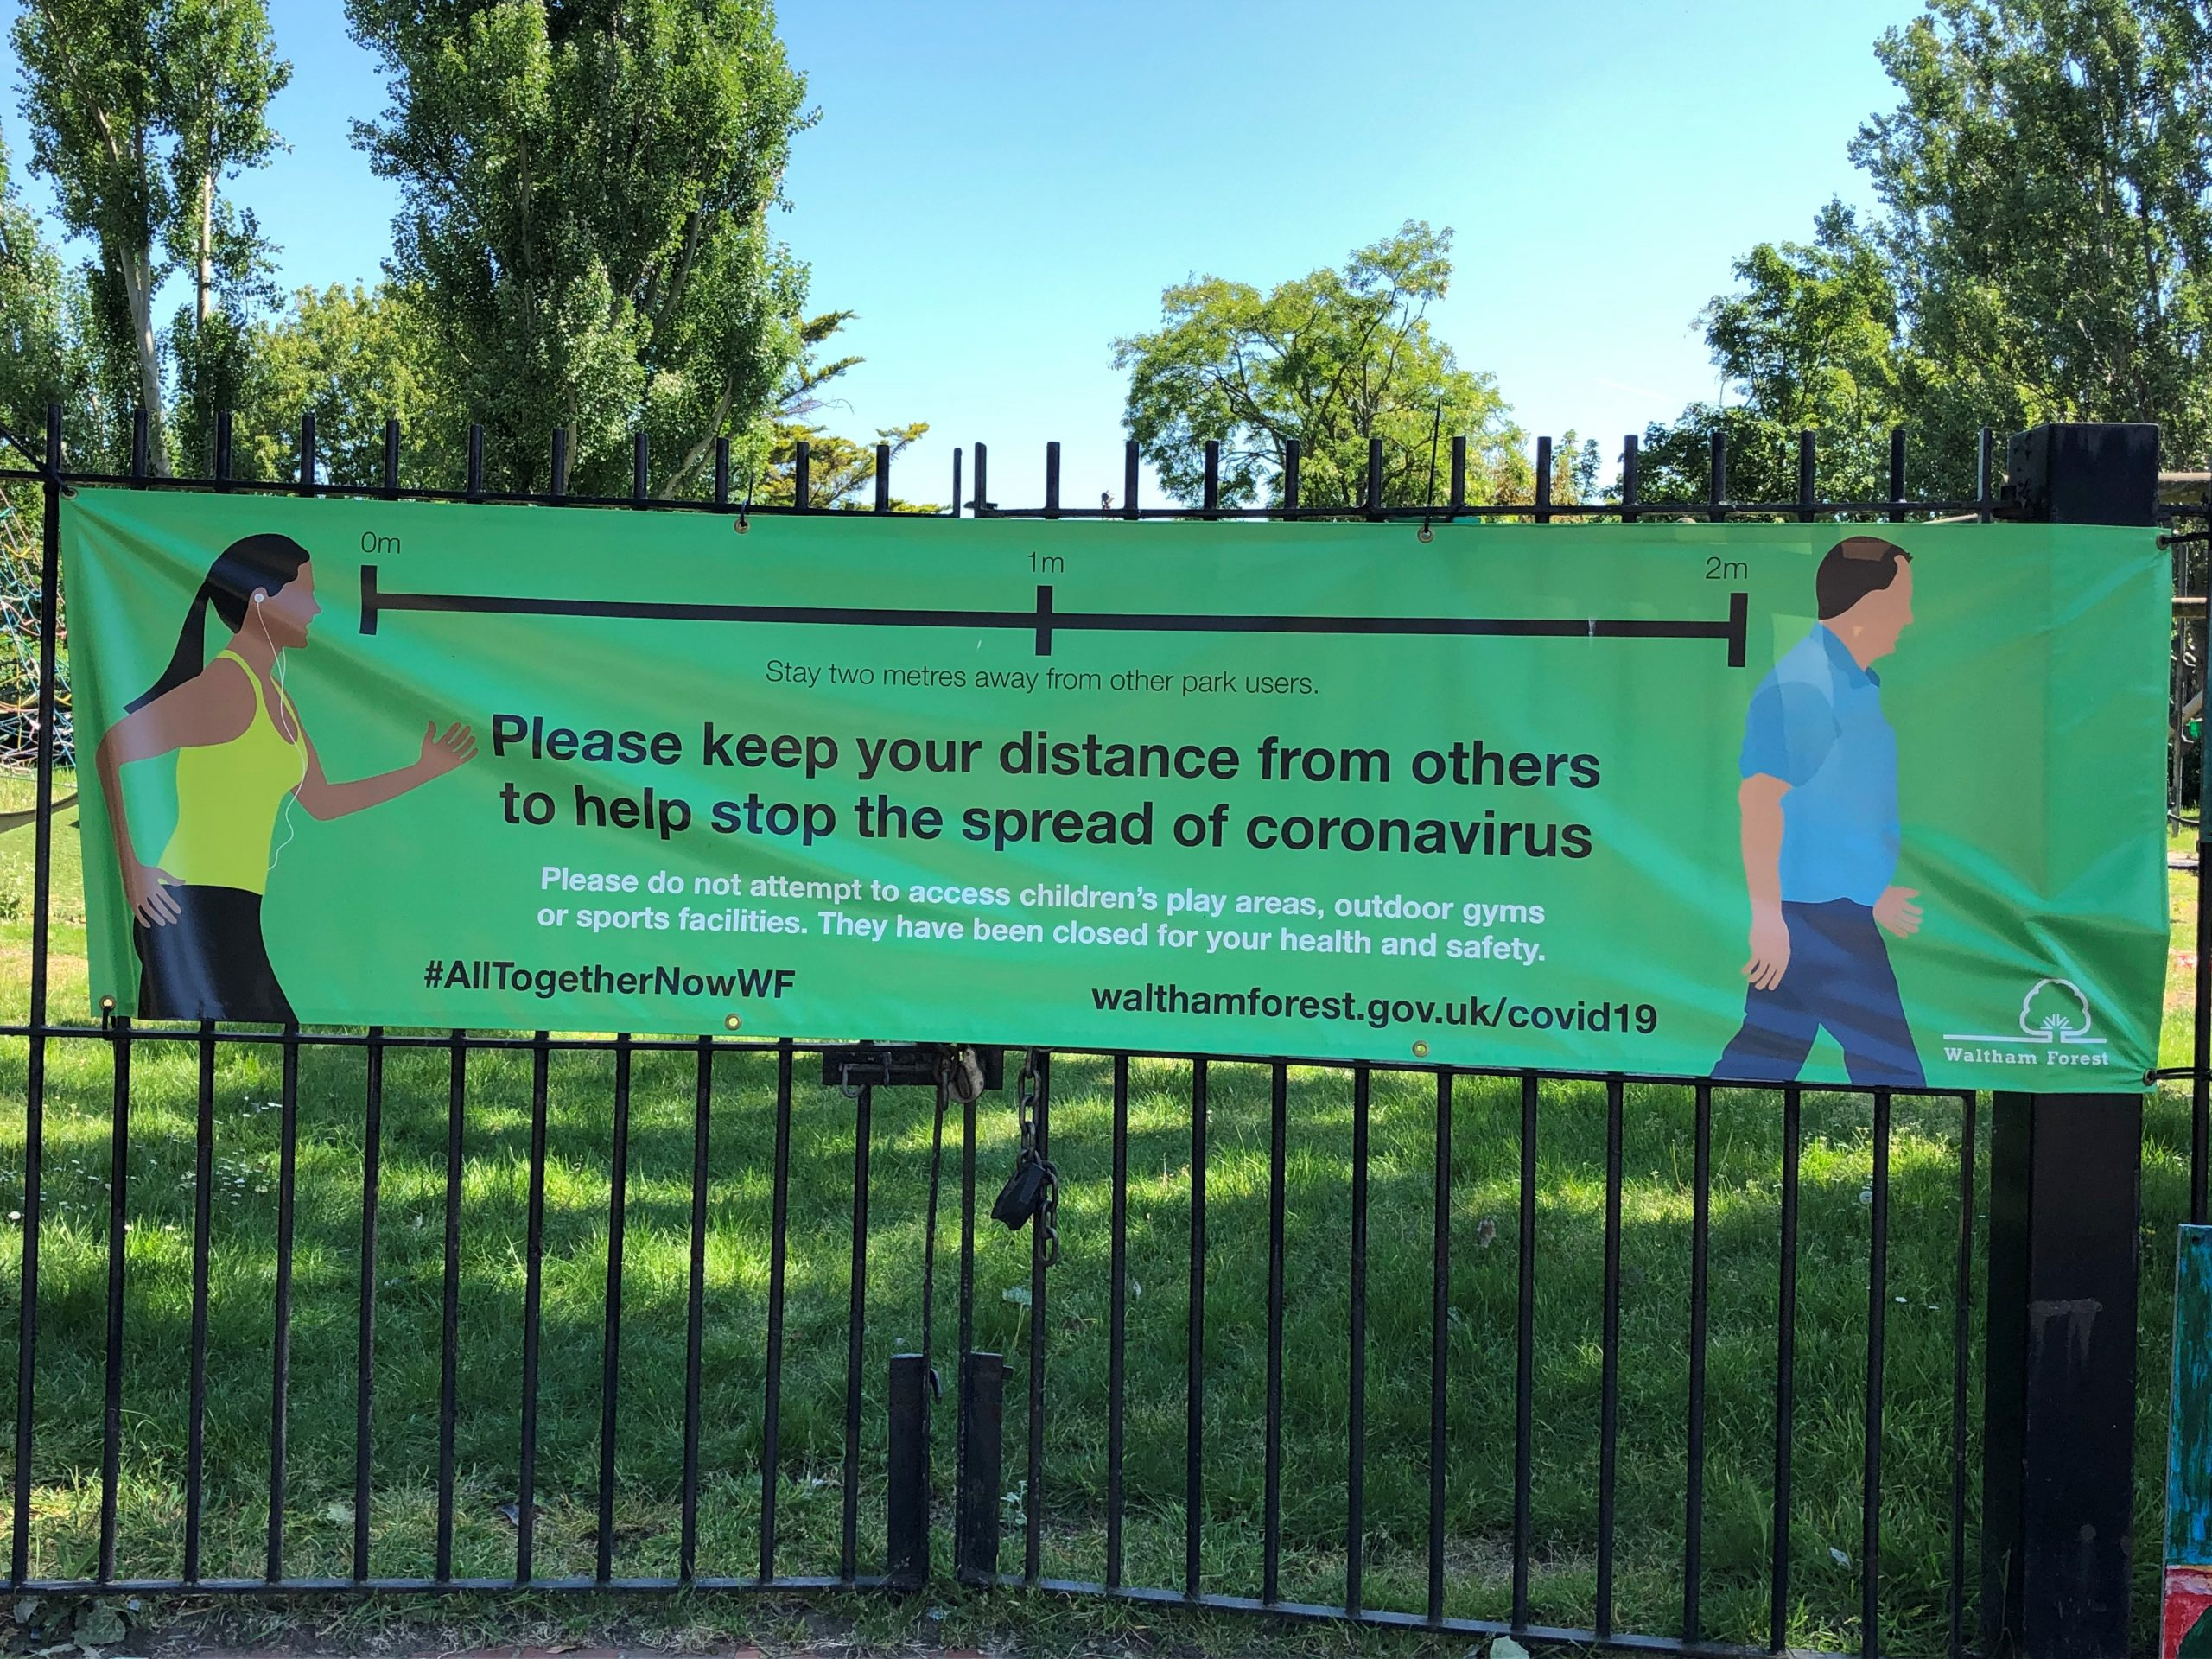 Sign in LB Waltham Forest telling people to keep 2 metres apart because of COVID-19